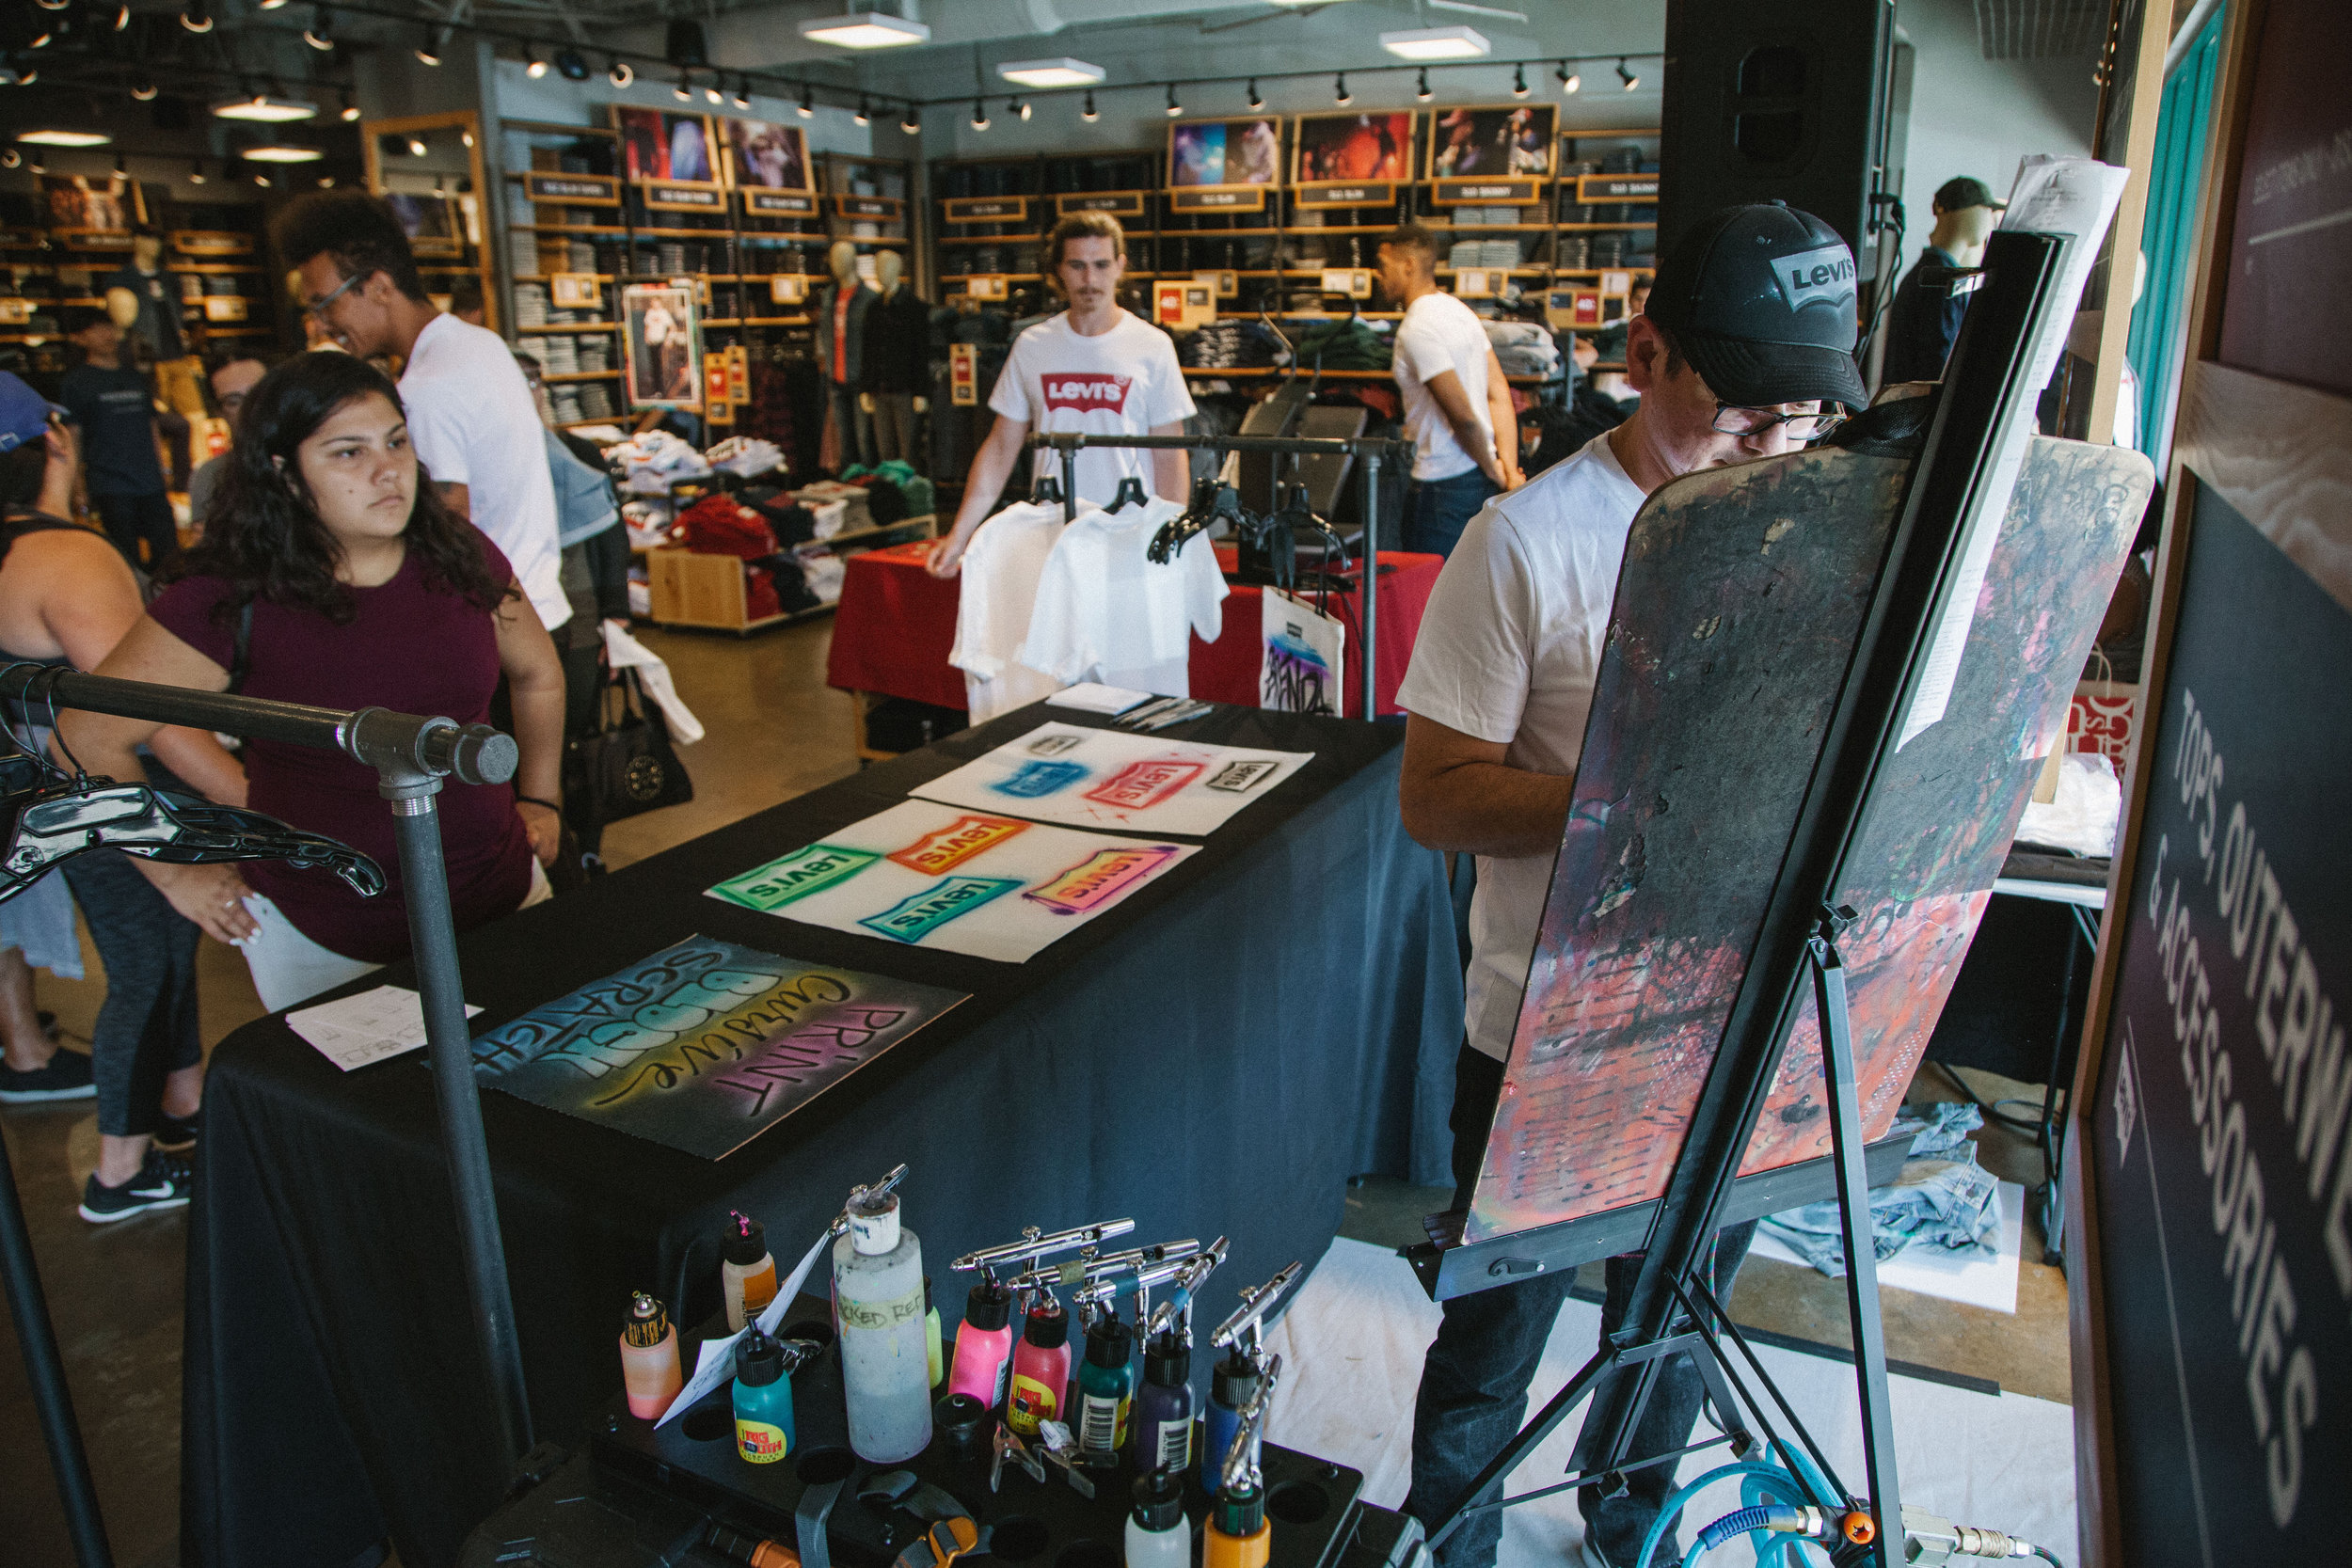 Levi's airbrush back to school event Camarillo